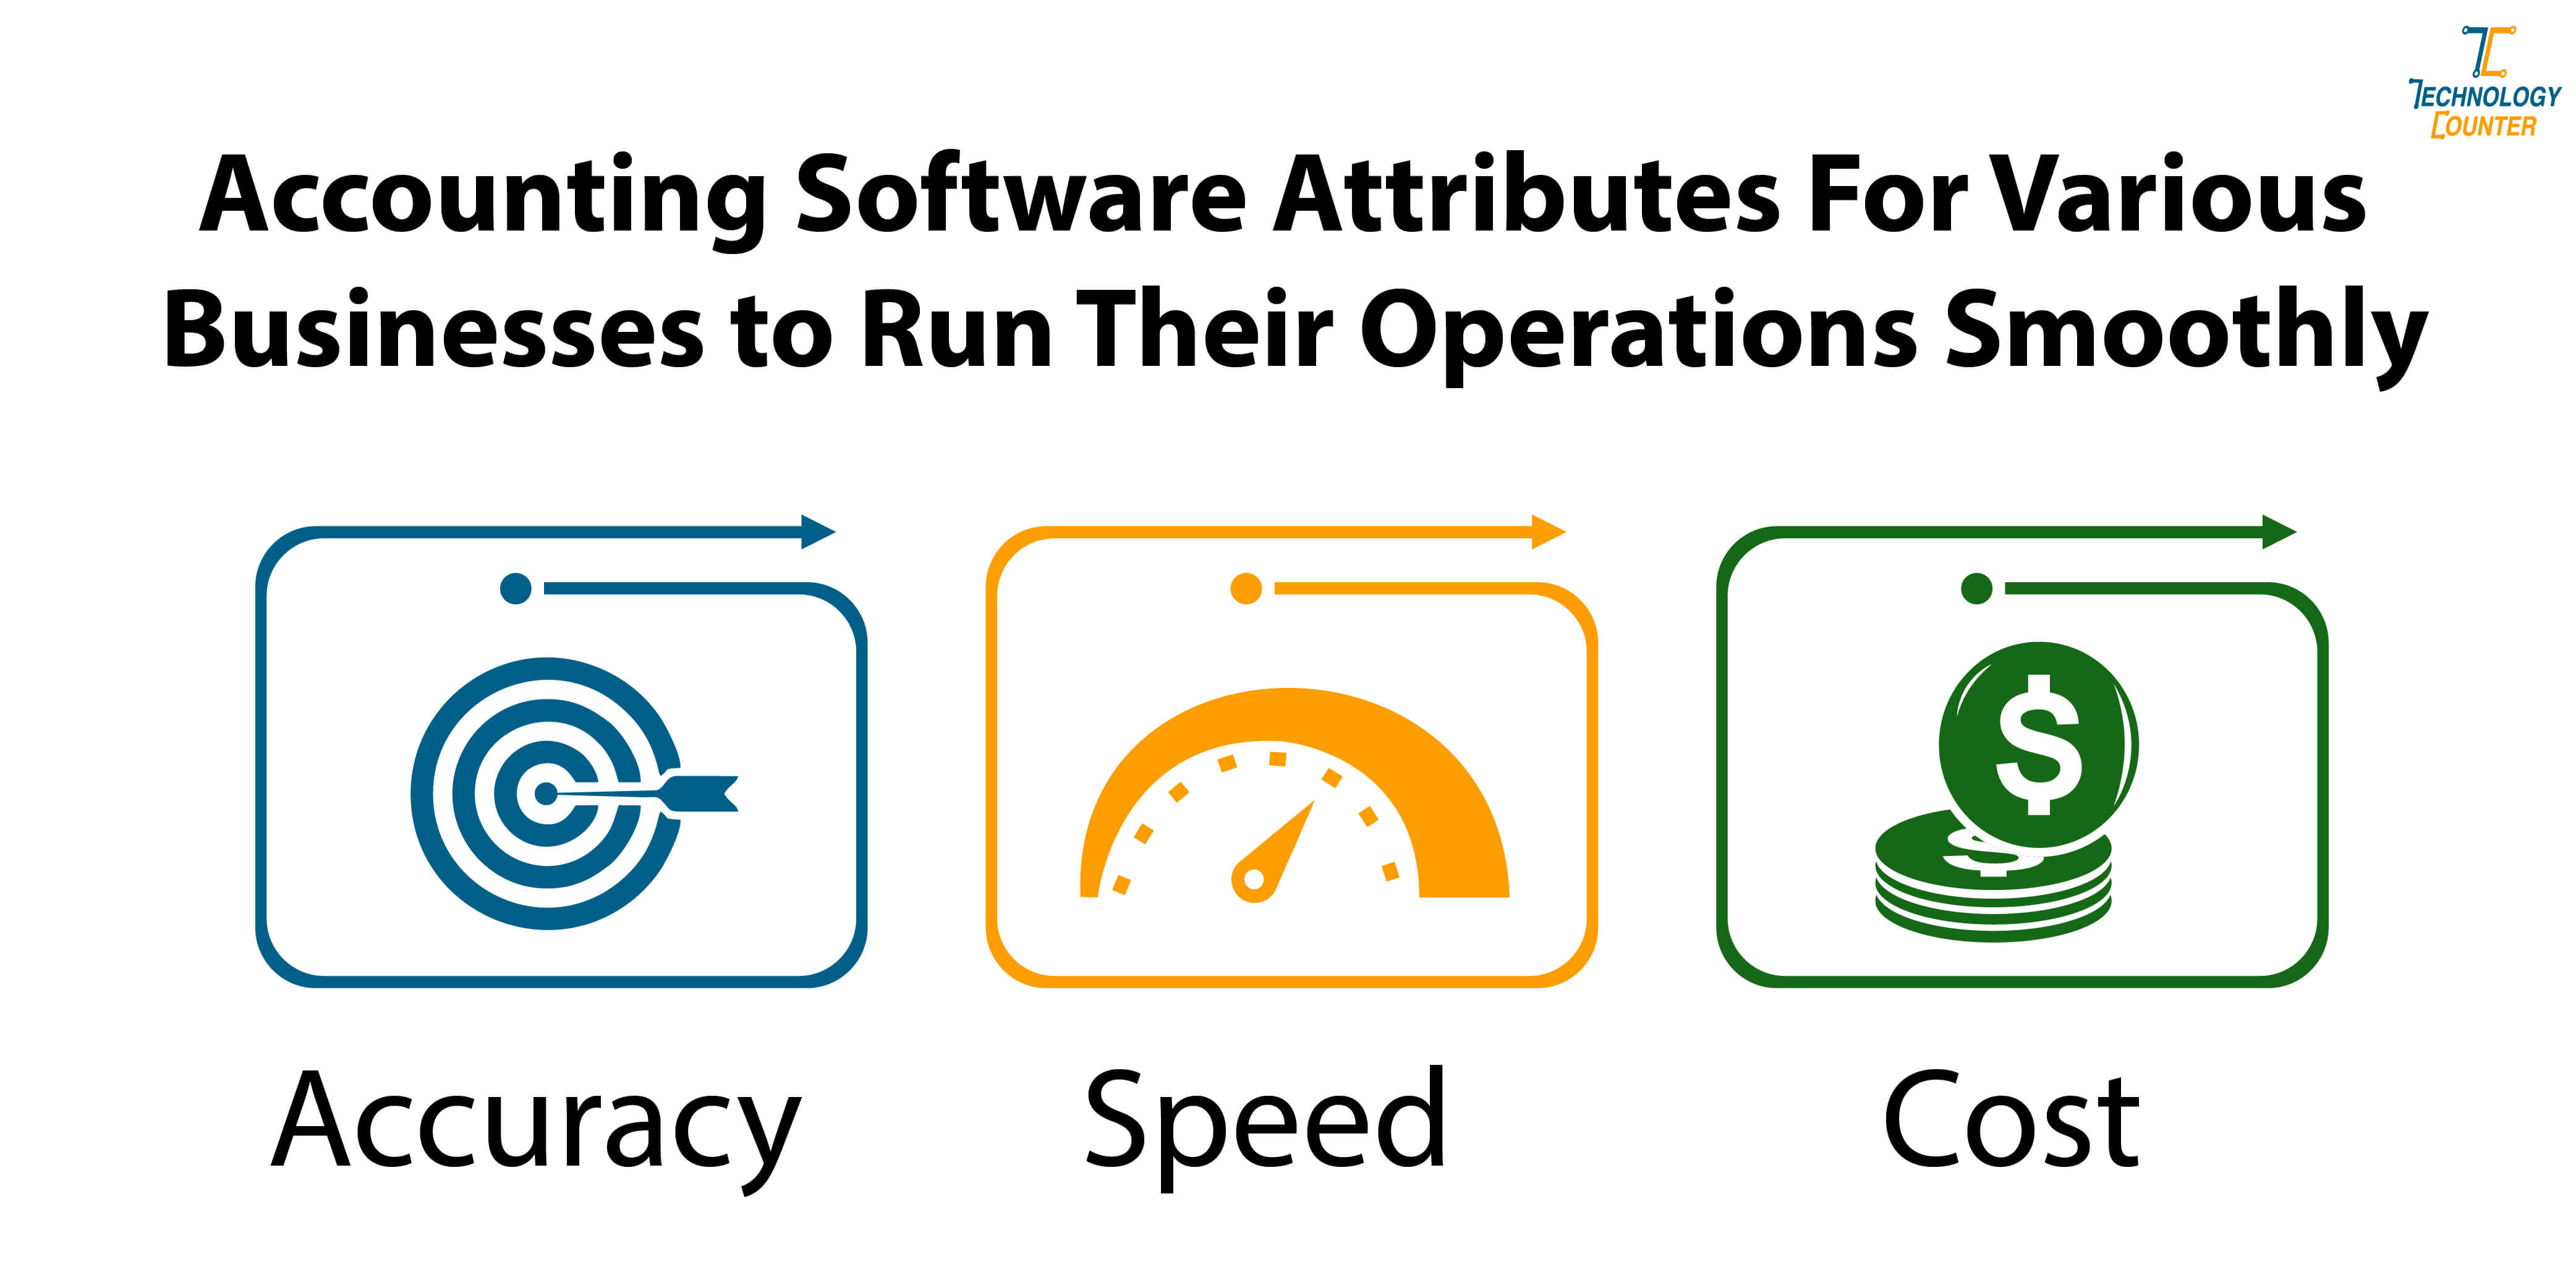 Accounting Software Attributes For Various Businesses